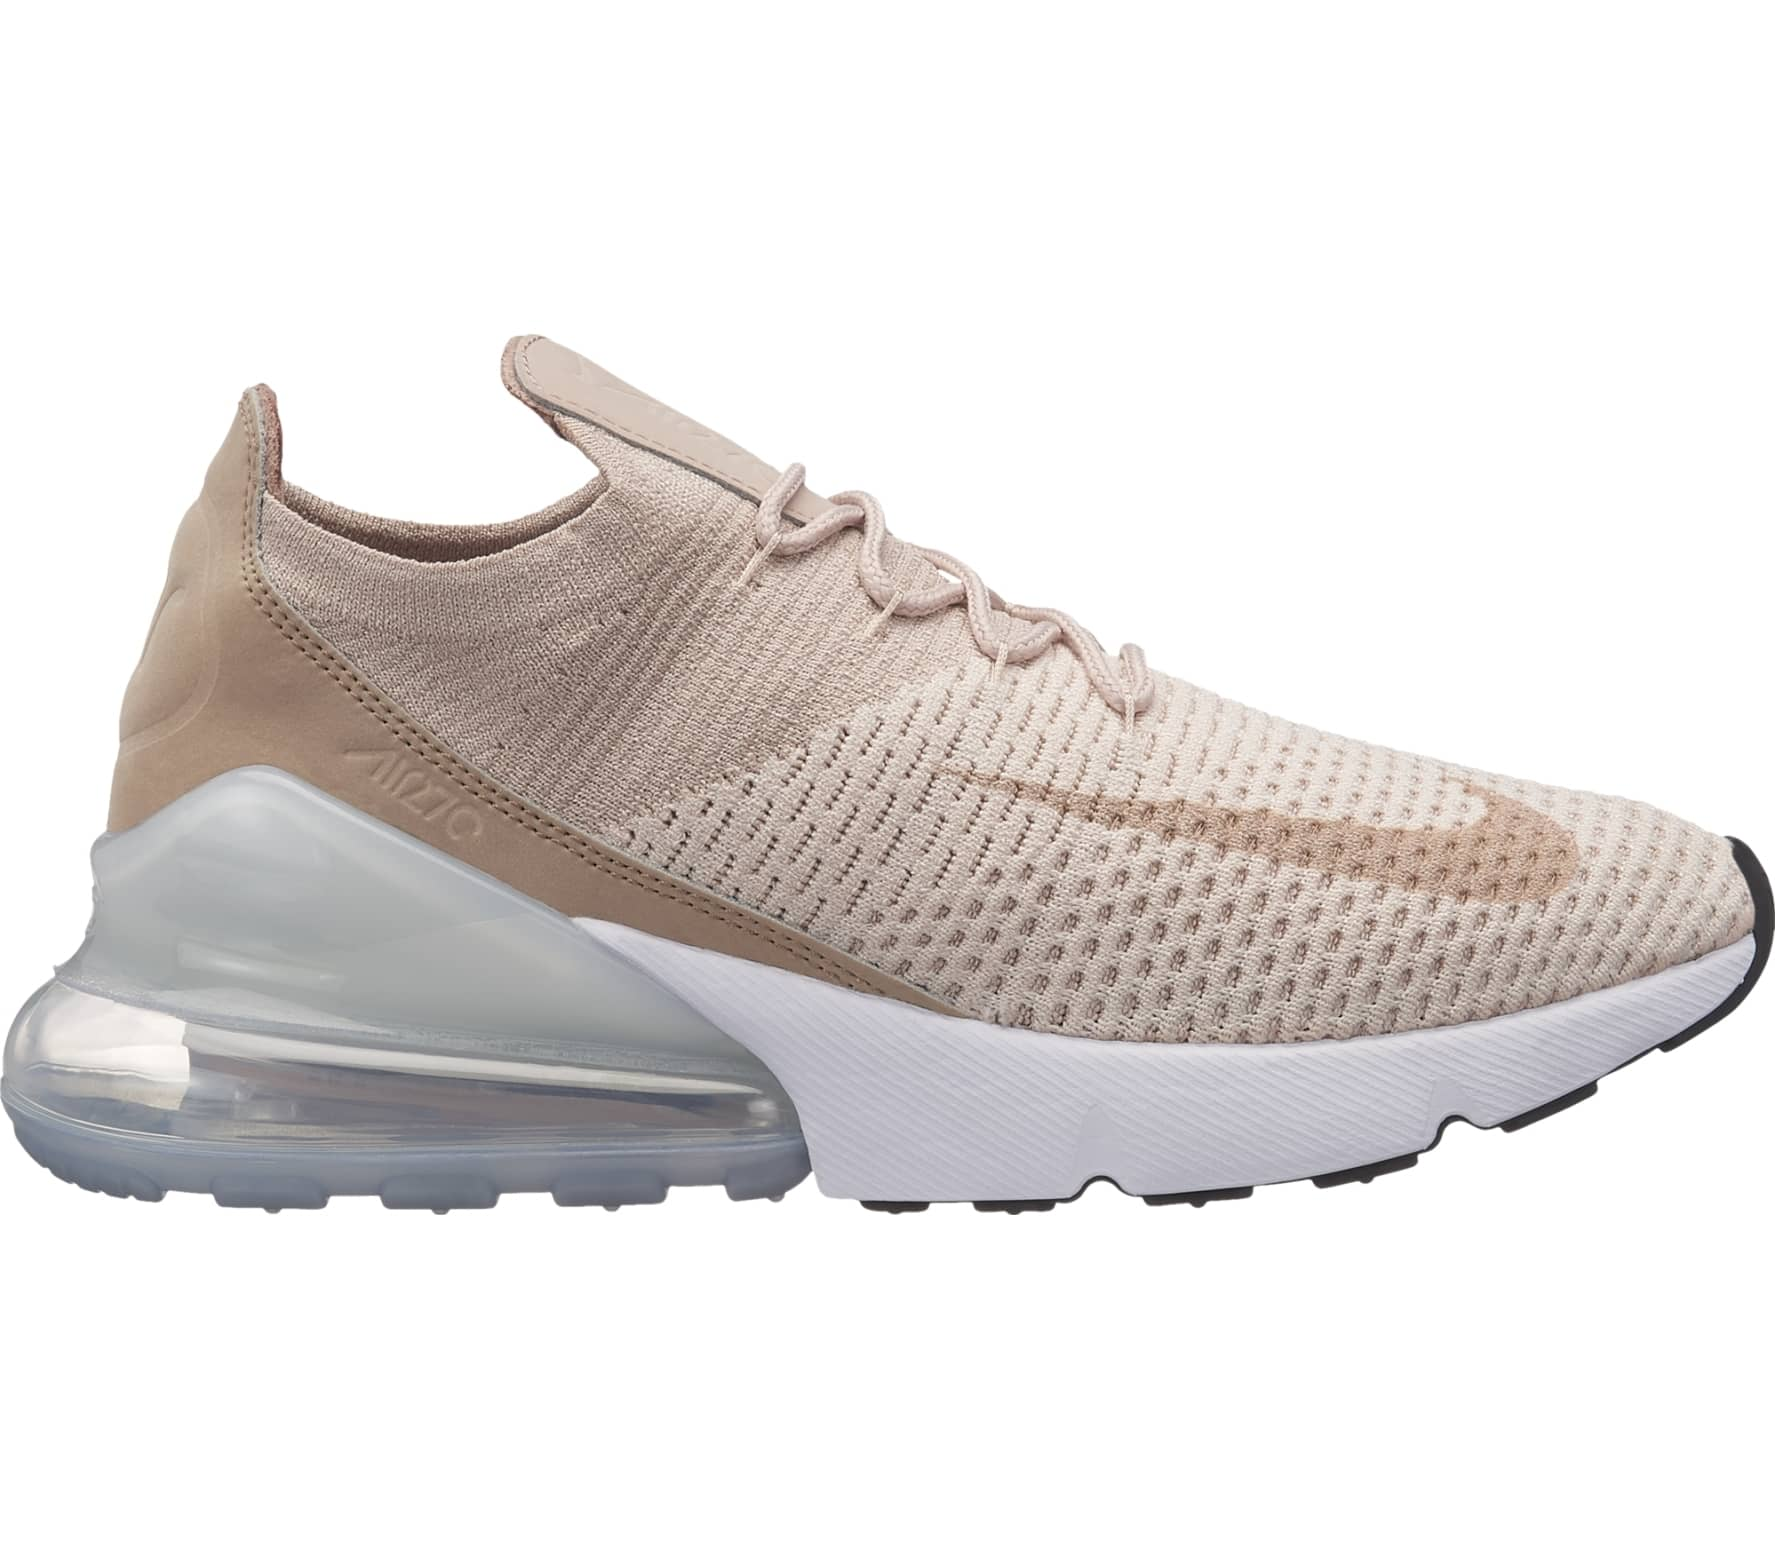 nike sportswear air max 270 flyknit damen sneaker beige. Black Bedroom Furniture Sets. Home Design Ideas